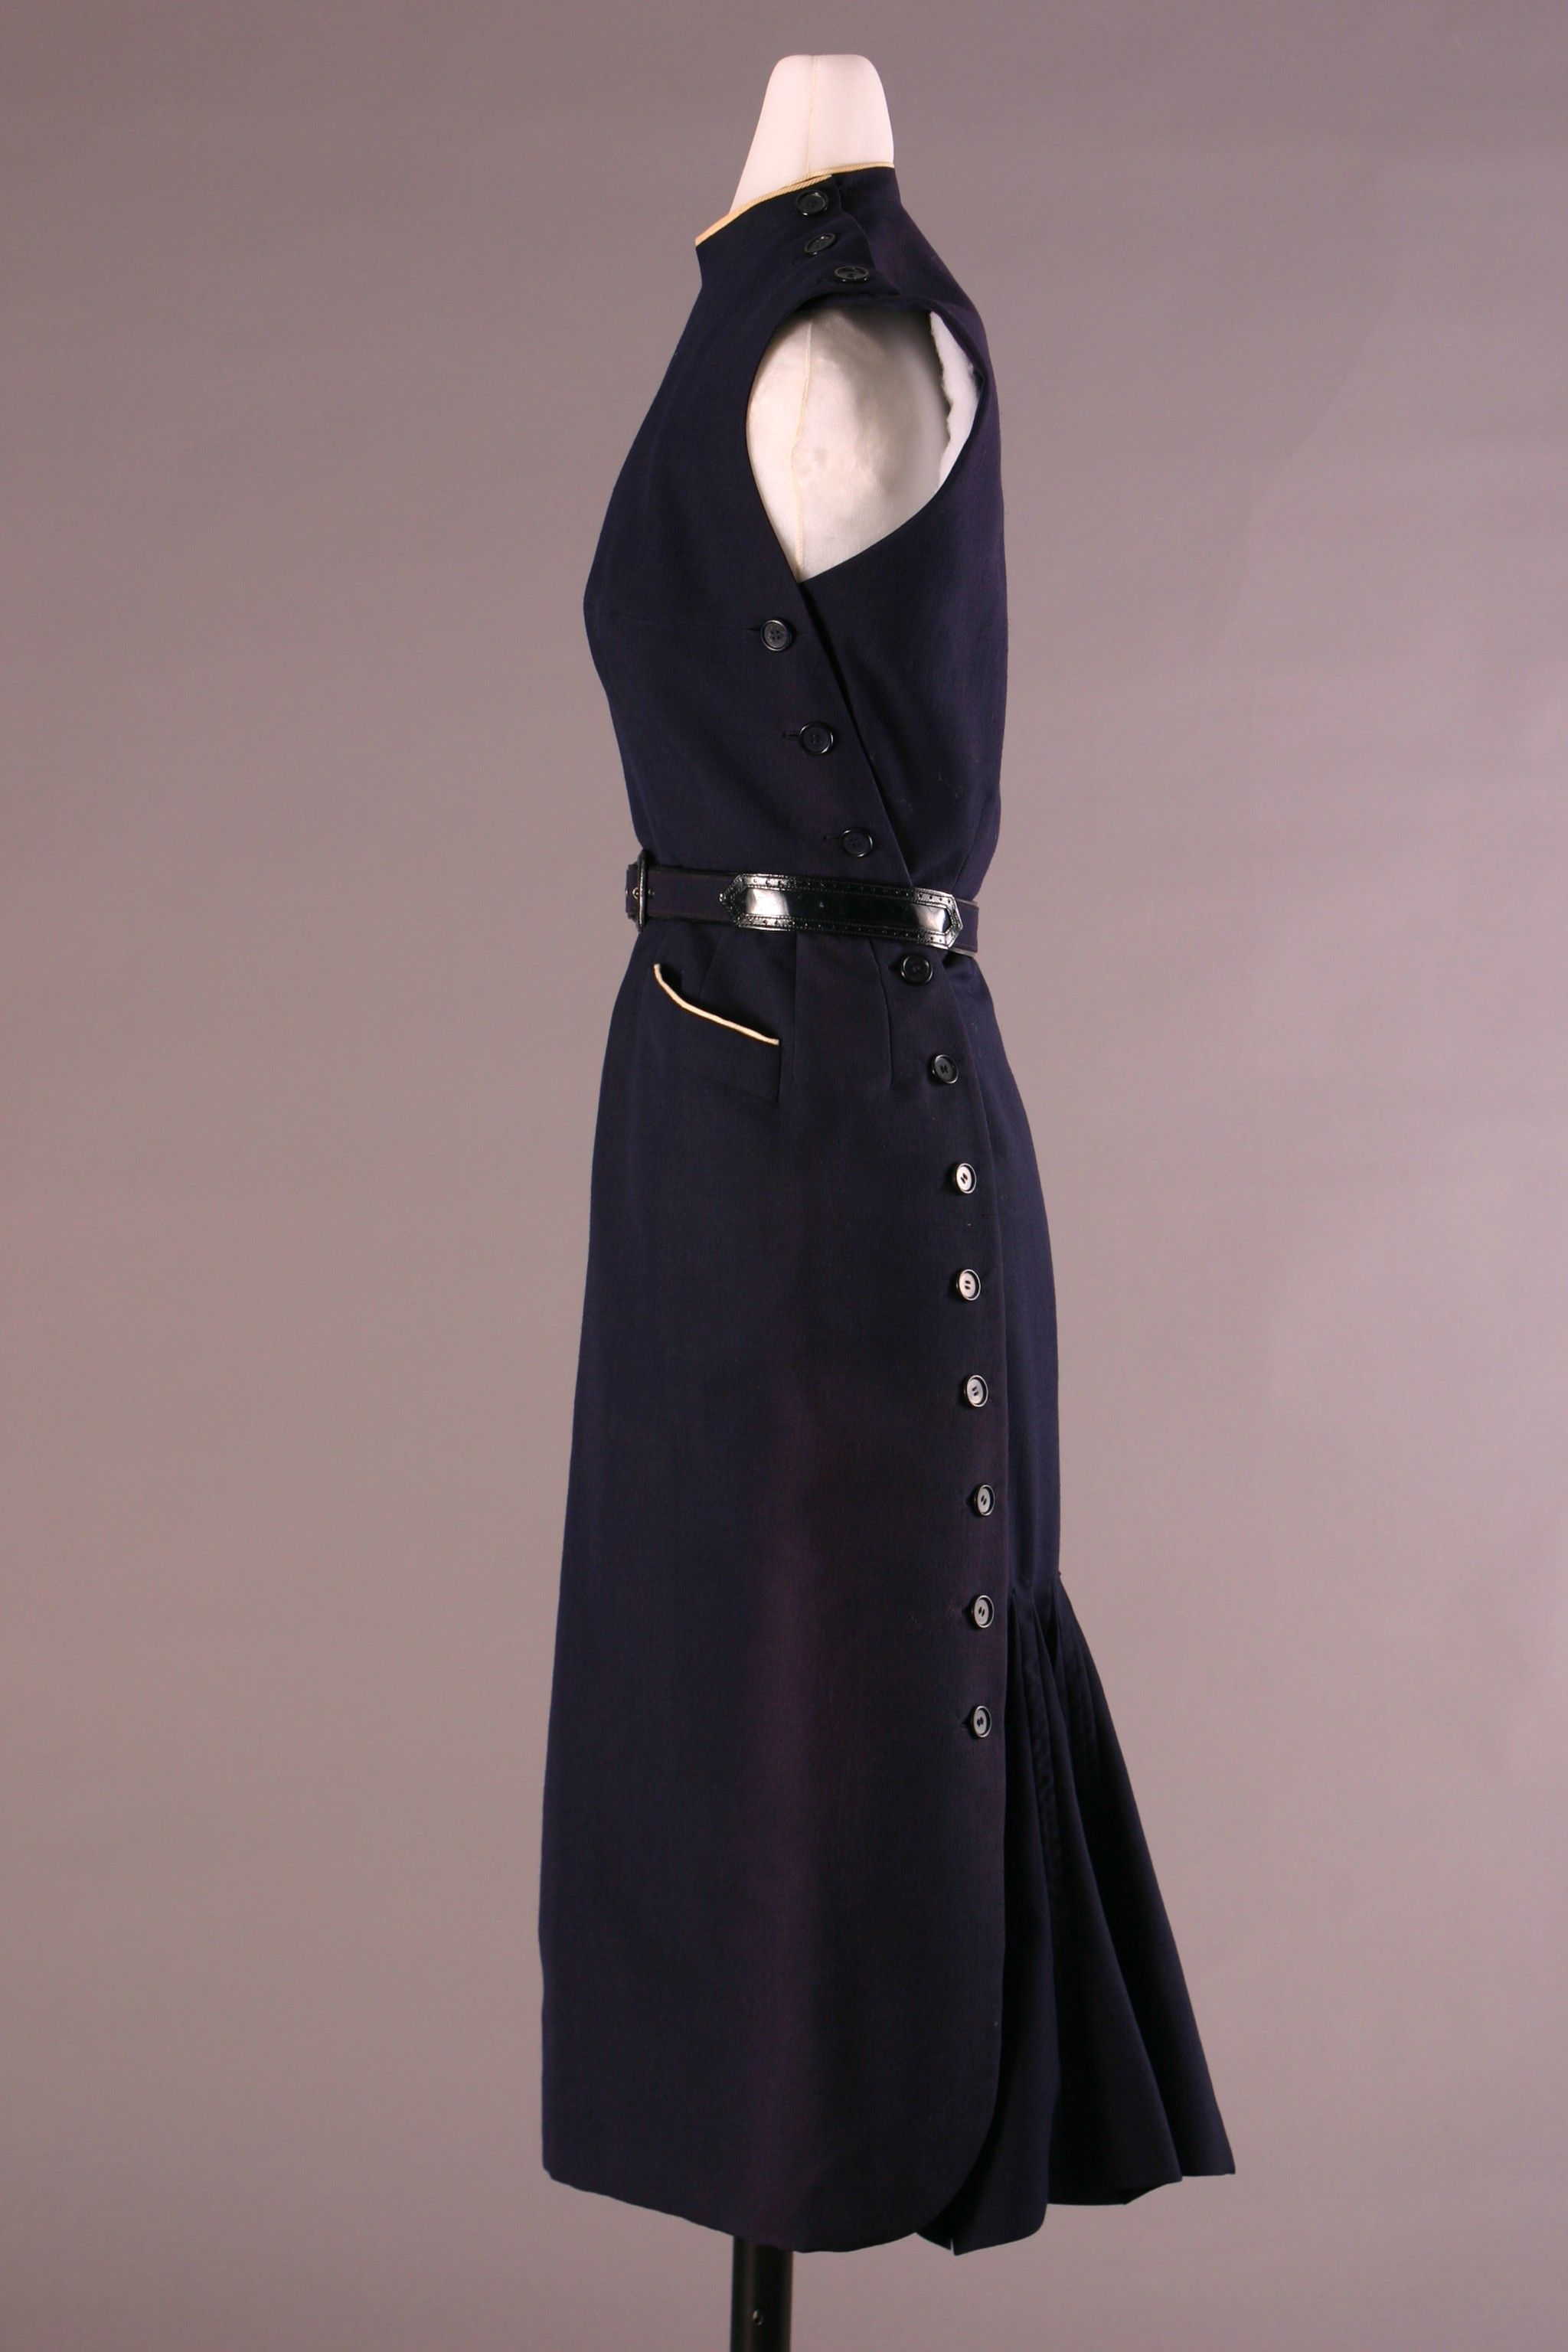 Christian Dior Dress - 1947.  Sleeveless sheath dress in navy blue wool/silk or wool/mohair blend. Composed of two panels, front and back, buttoned together at shoulder and along sides. Back panel pleated from knee-level to hem.